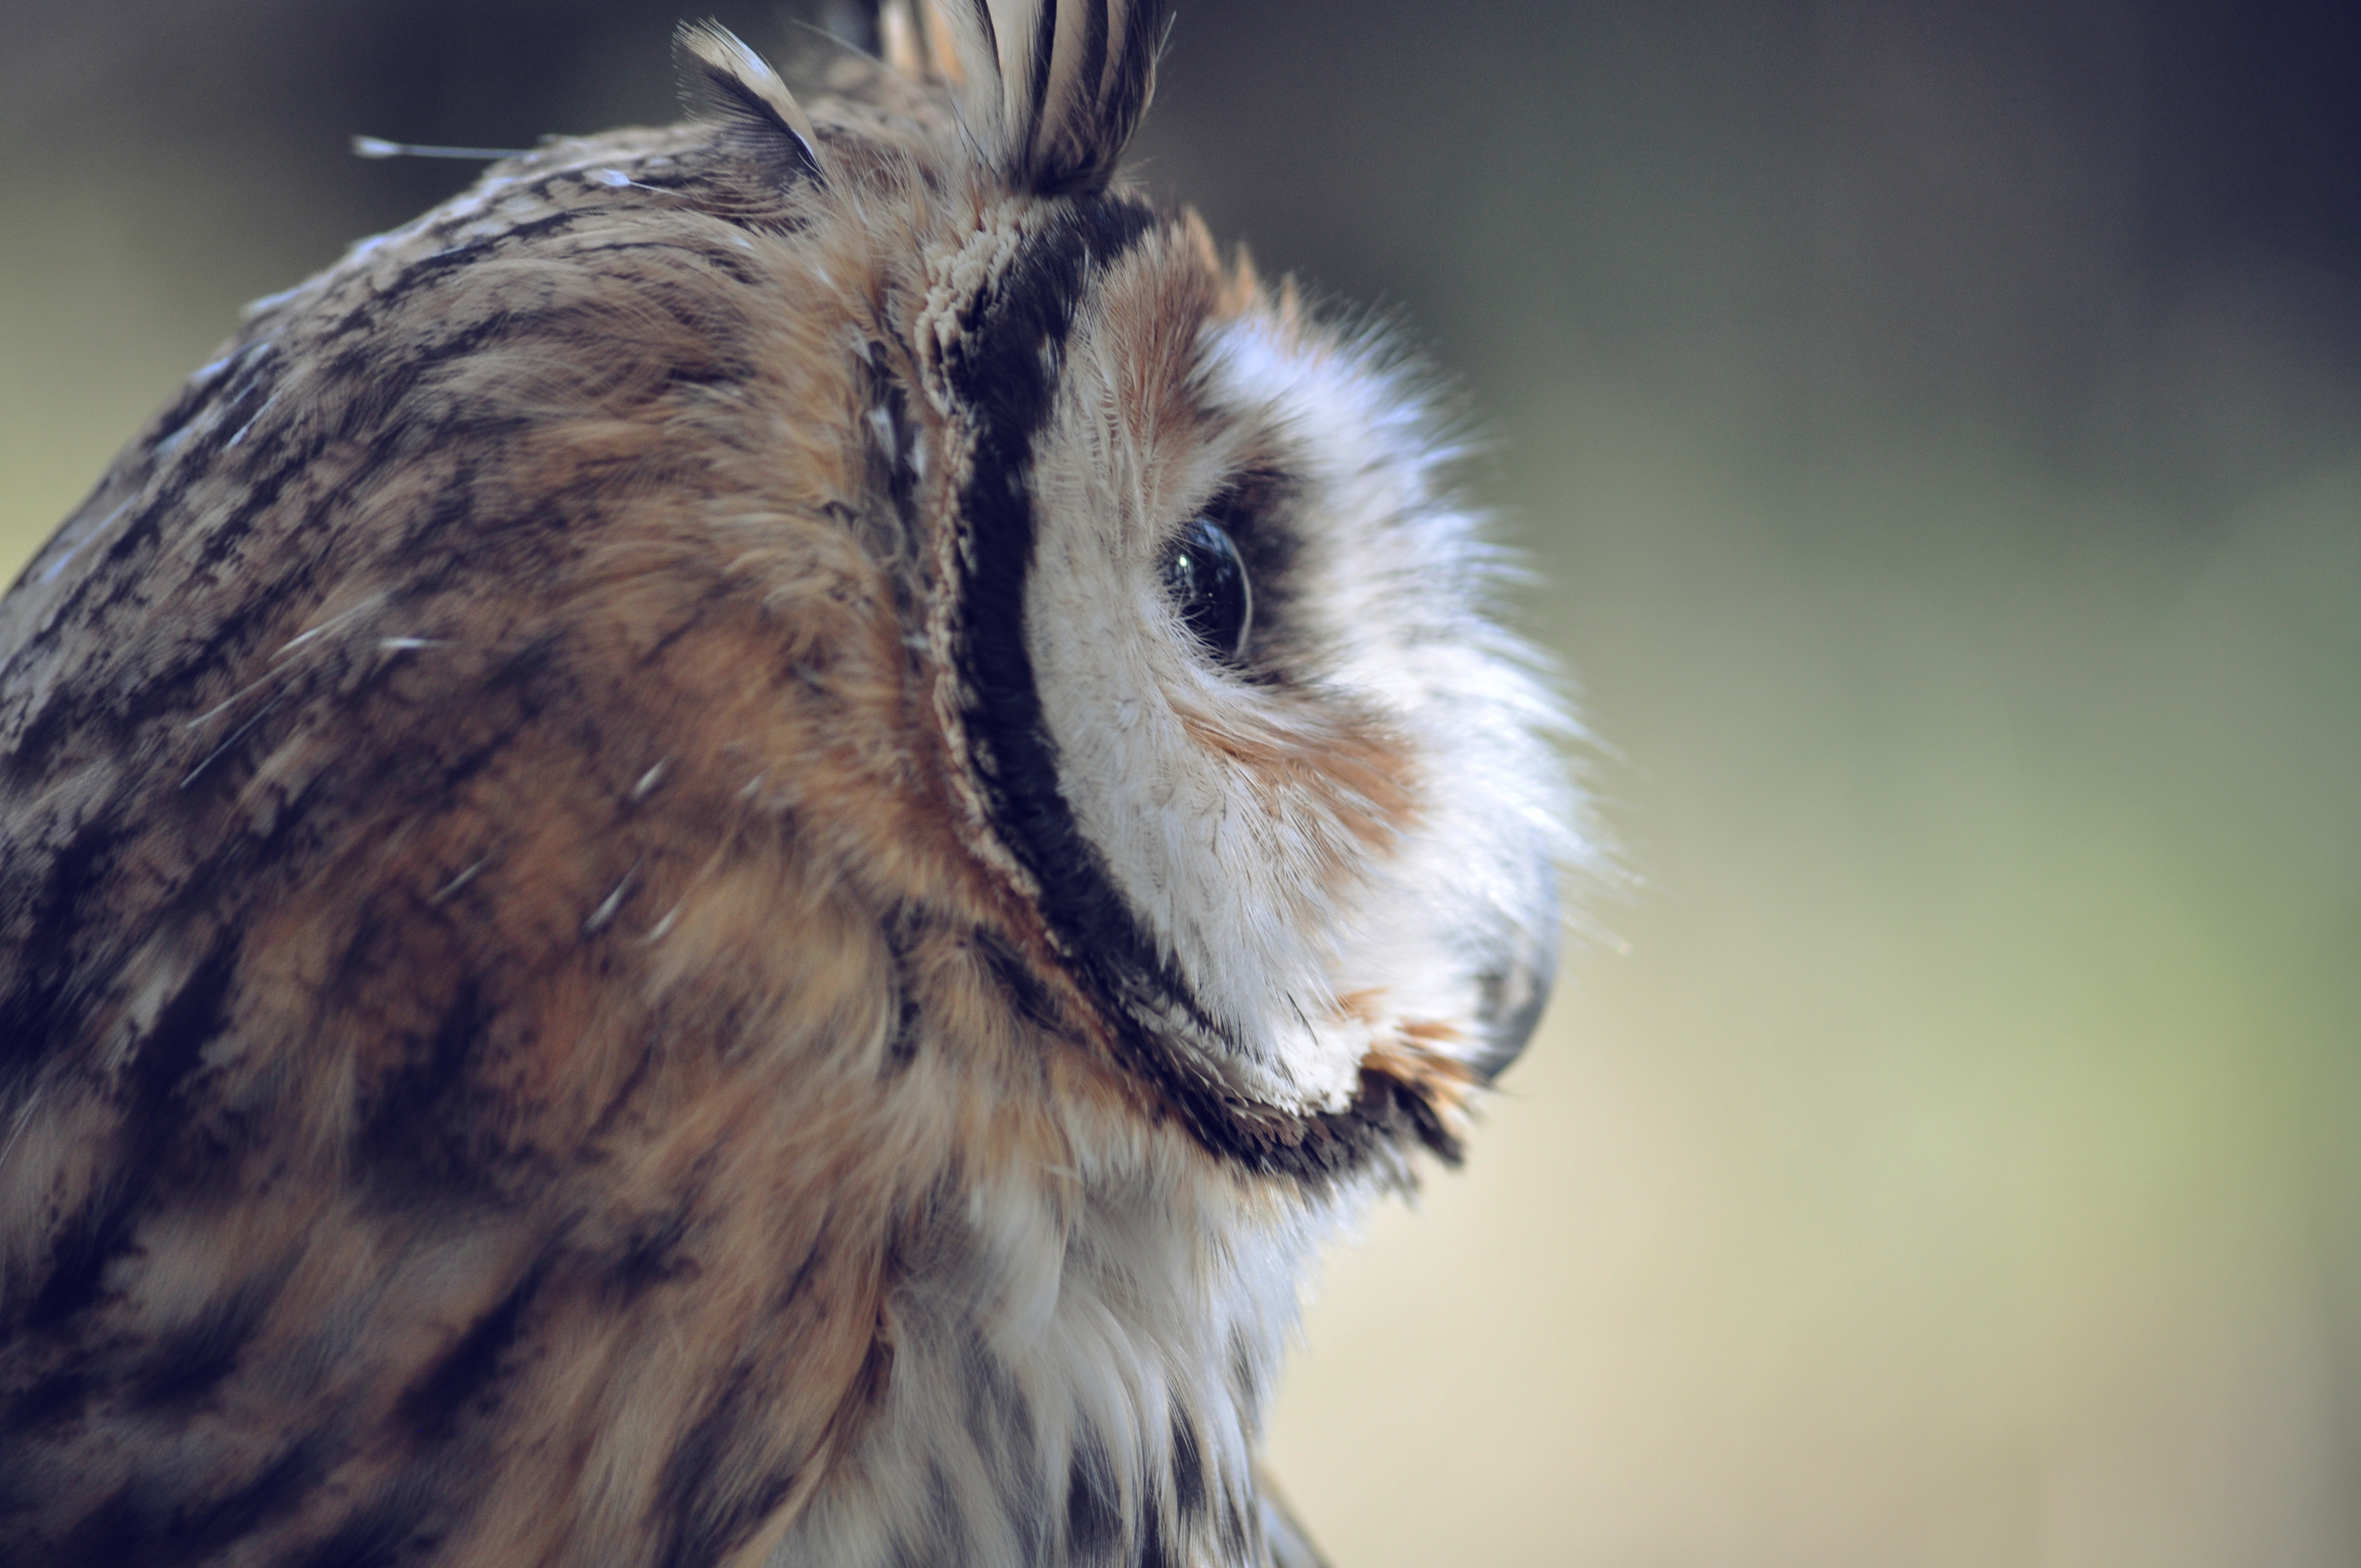 Owls 4k Wallpapers For Your Desktop Or Mobile Screen Free And Easy To Download